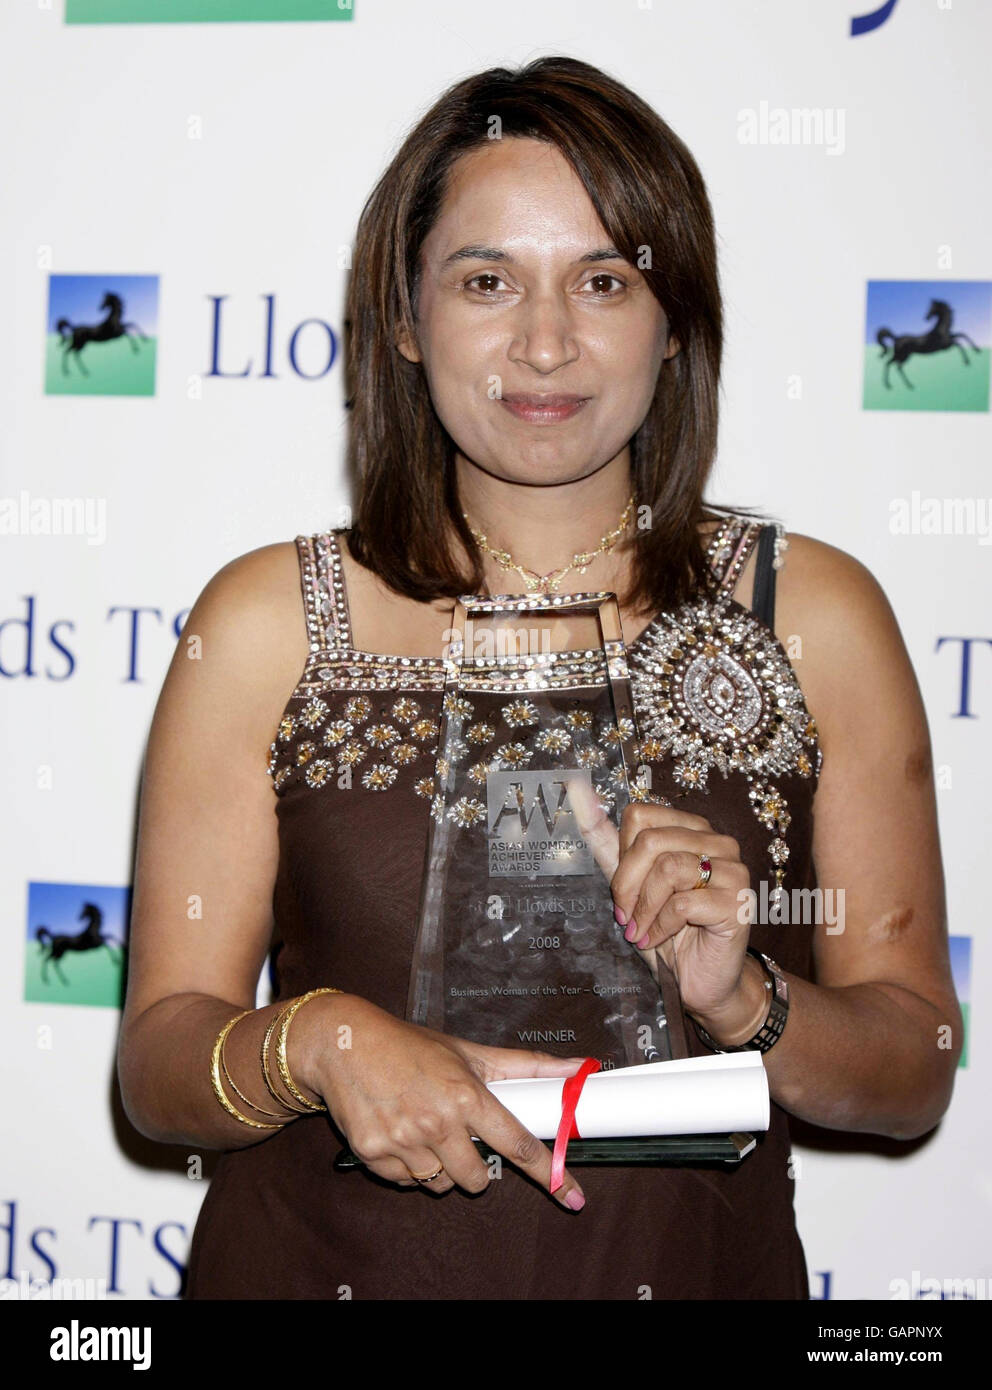 Asian Women Of The Year Awards - London - Stock Image